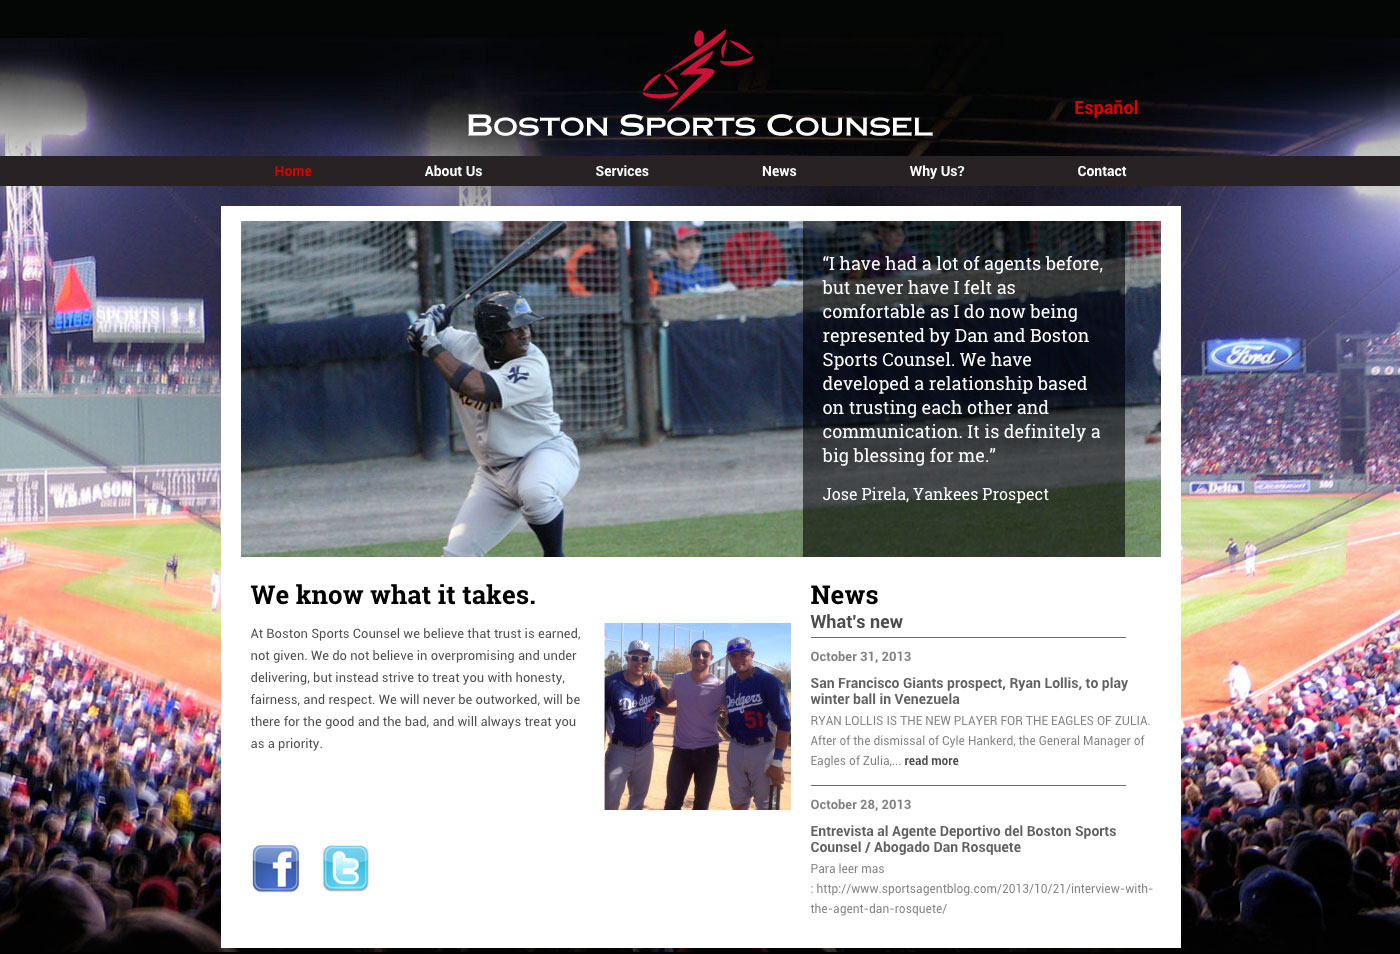 Boston Sports Council home page